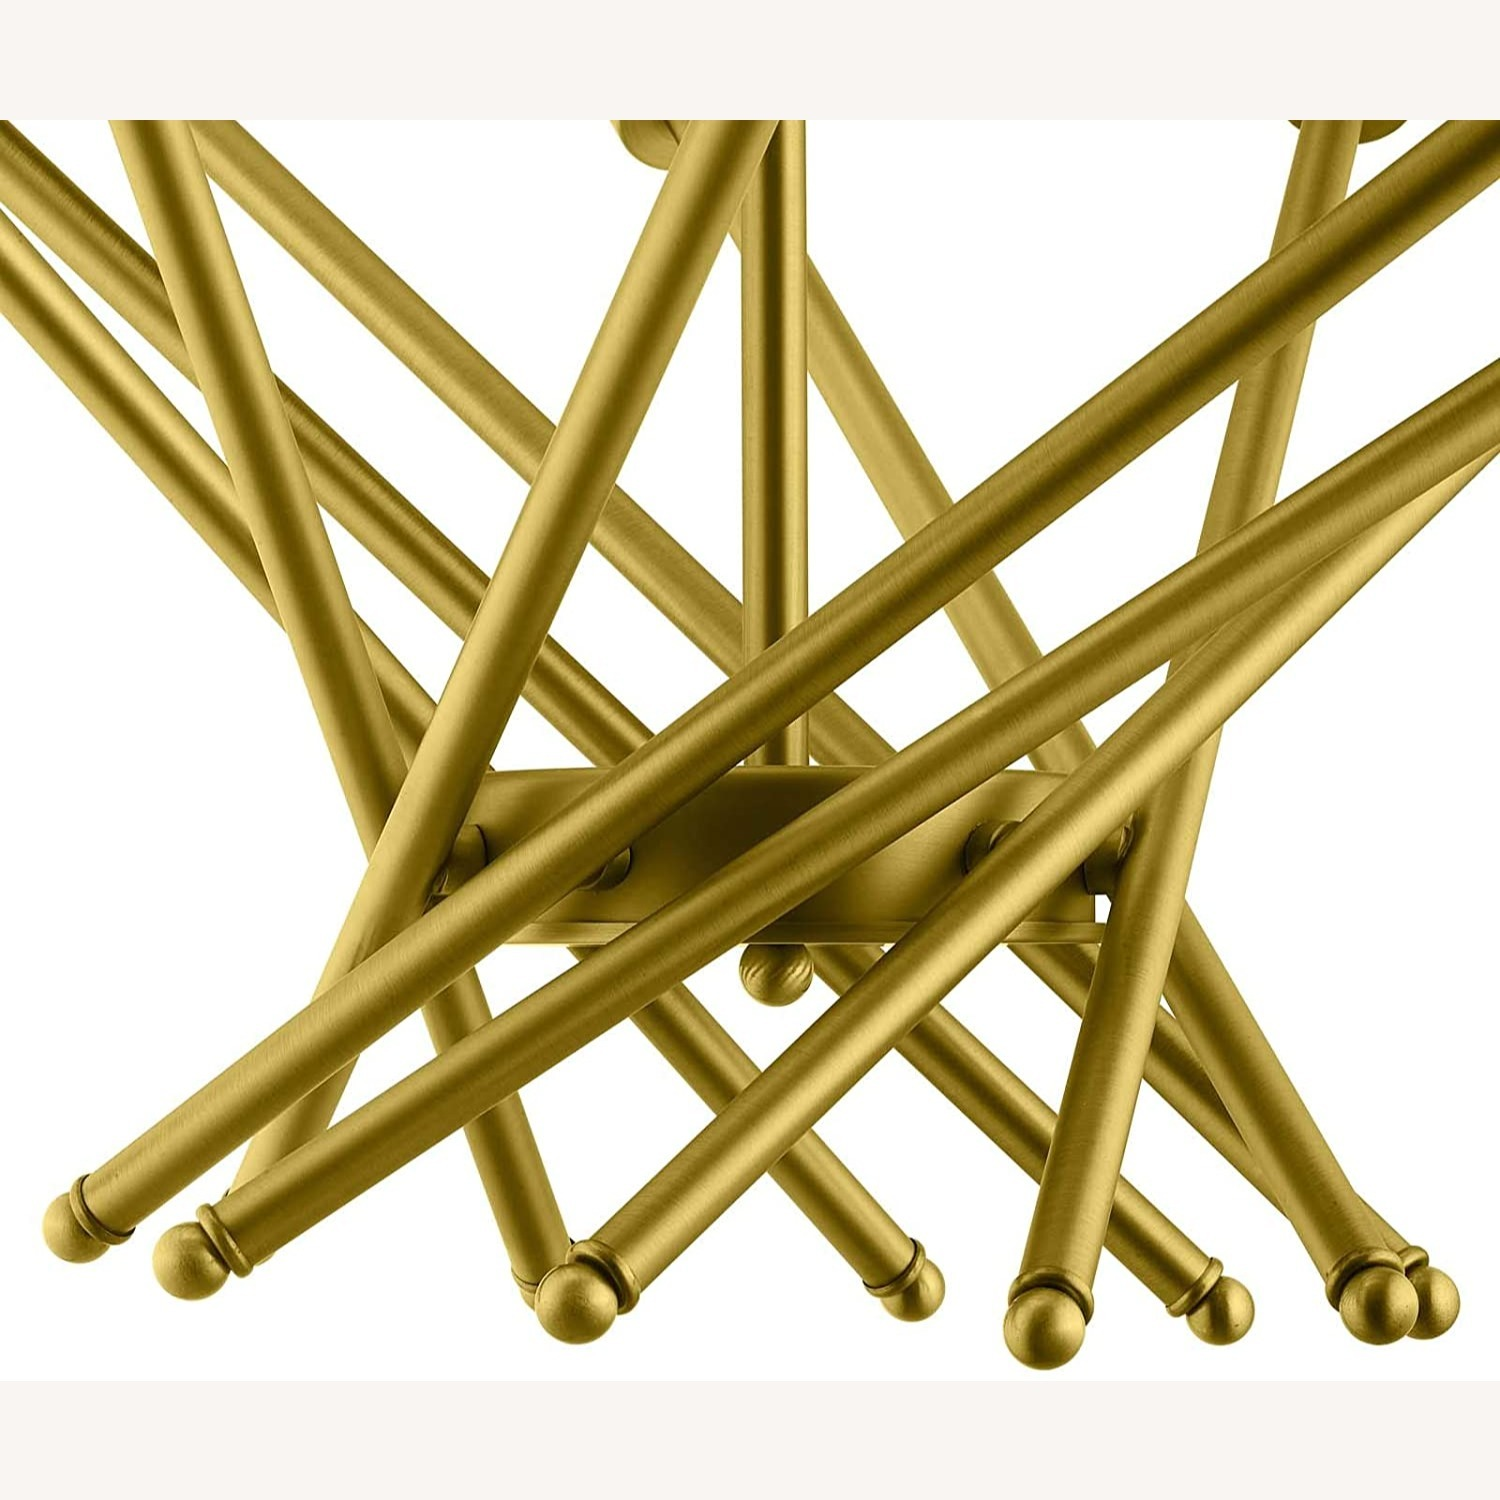 Contemporary Pendant Lamp In Brass Metal Rods - image-1